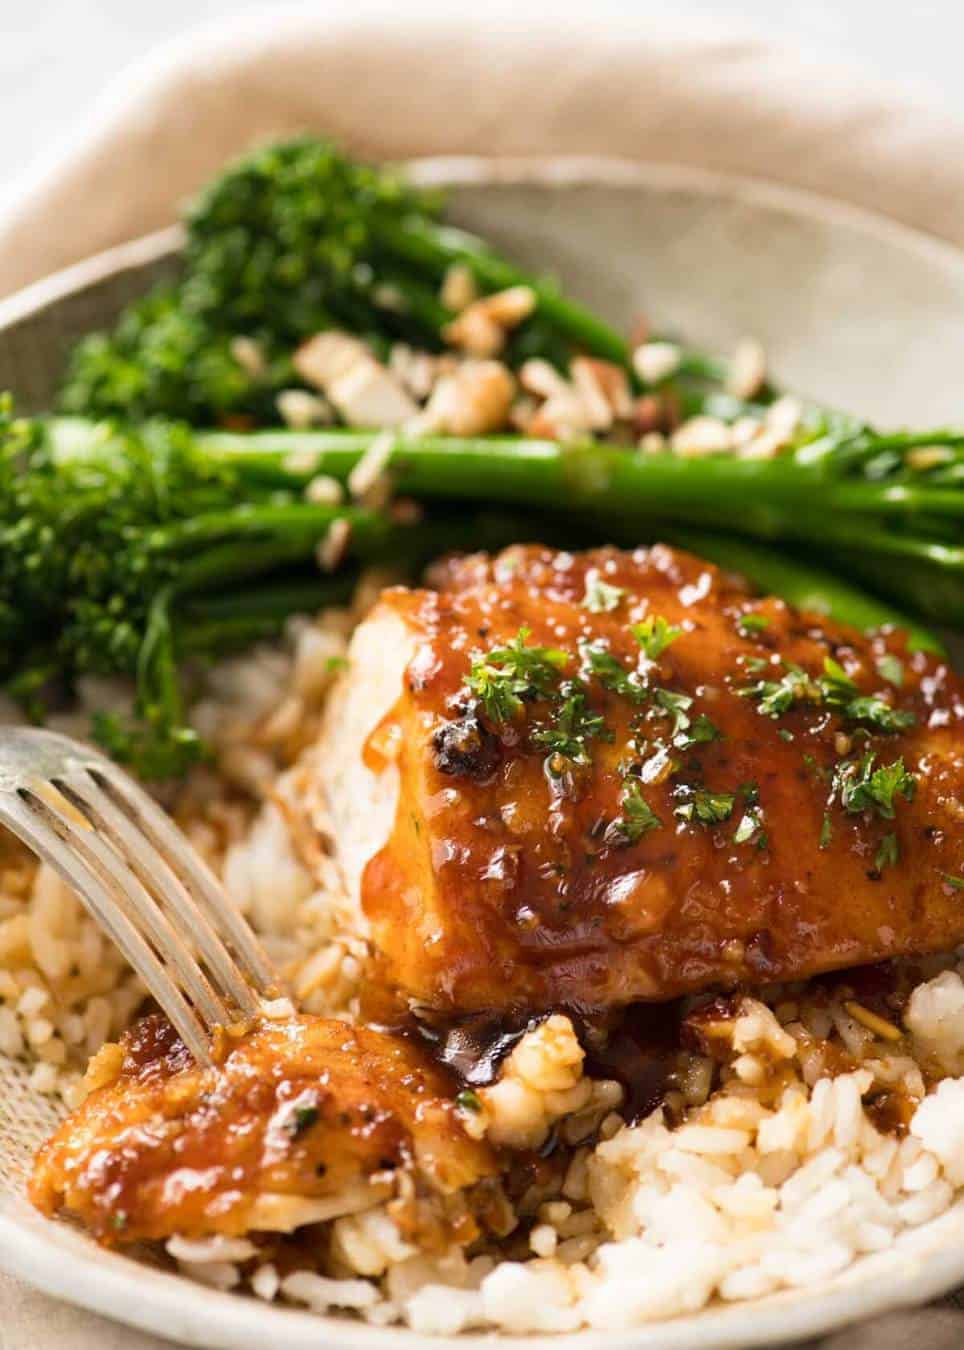 A fabulous quick and easy chicken recipe - Honey Garlic Chicken Breast. Just chicken, butter, honey, garlic, vinegar and soy sauce. www.recipetineats.com